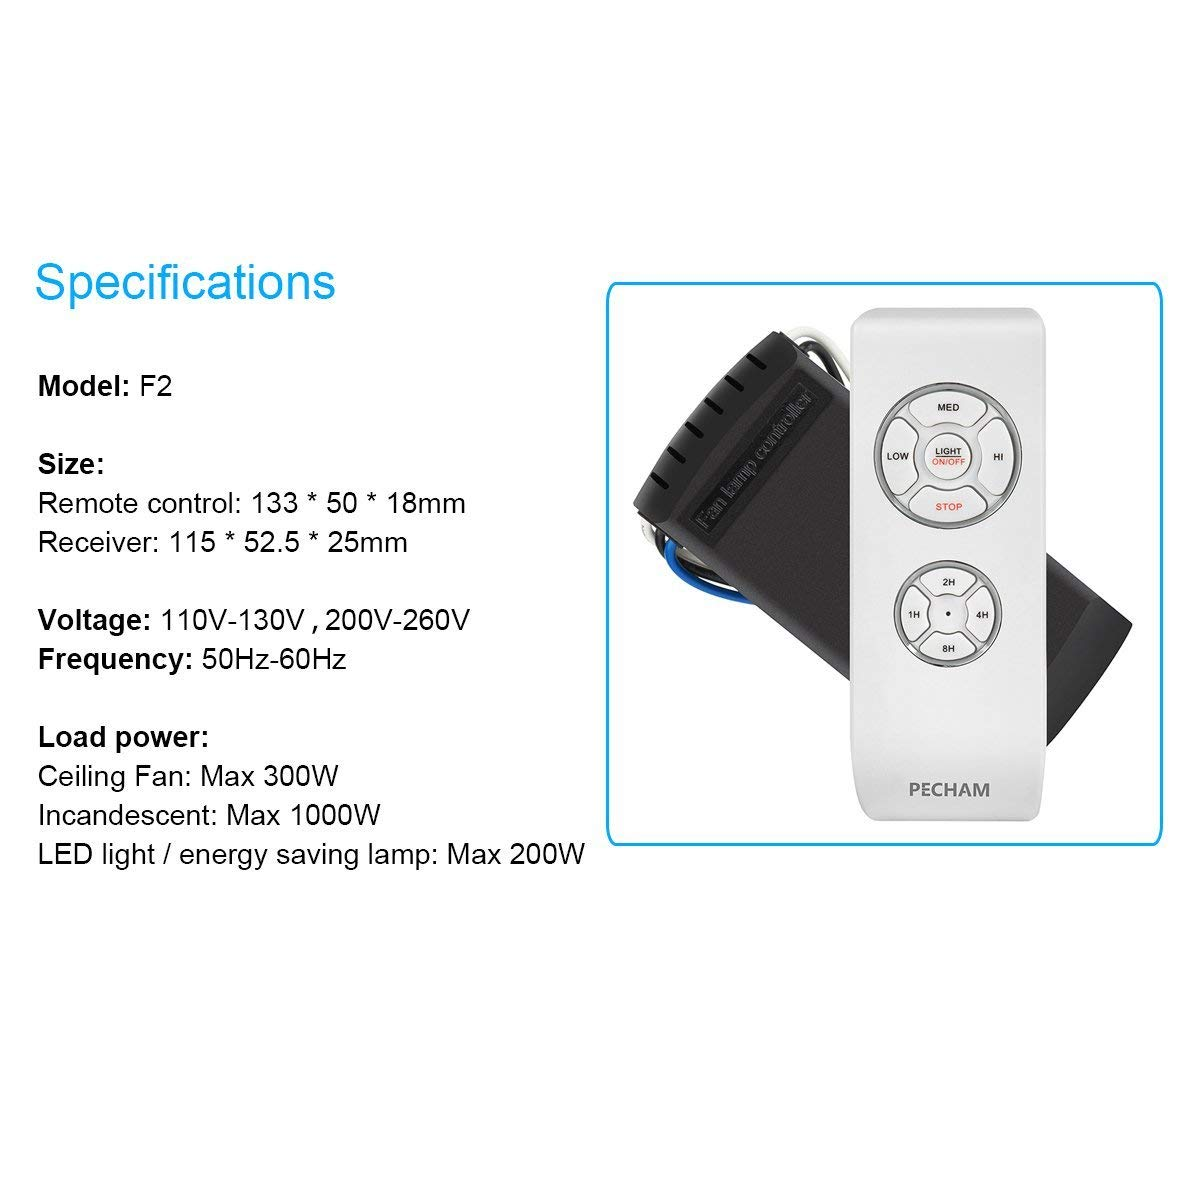 PECHAM Universal Lamp Kit & Timing Wireless Remote Control for Ceiling Fan, Scope of Application [Home/Office/Hotel/The Club/Display Hall/Restaurant] by PECHAM (Image #7)